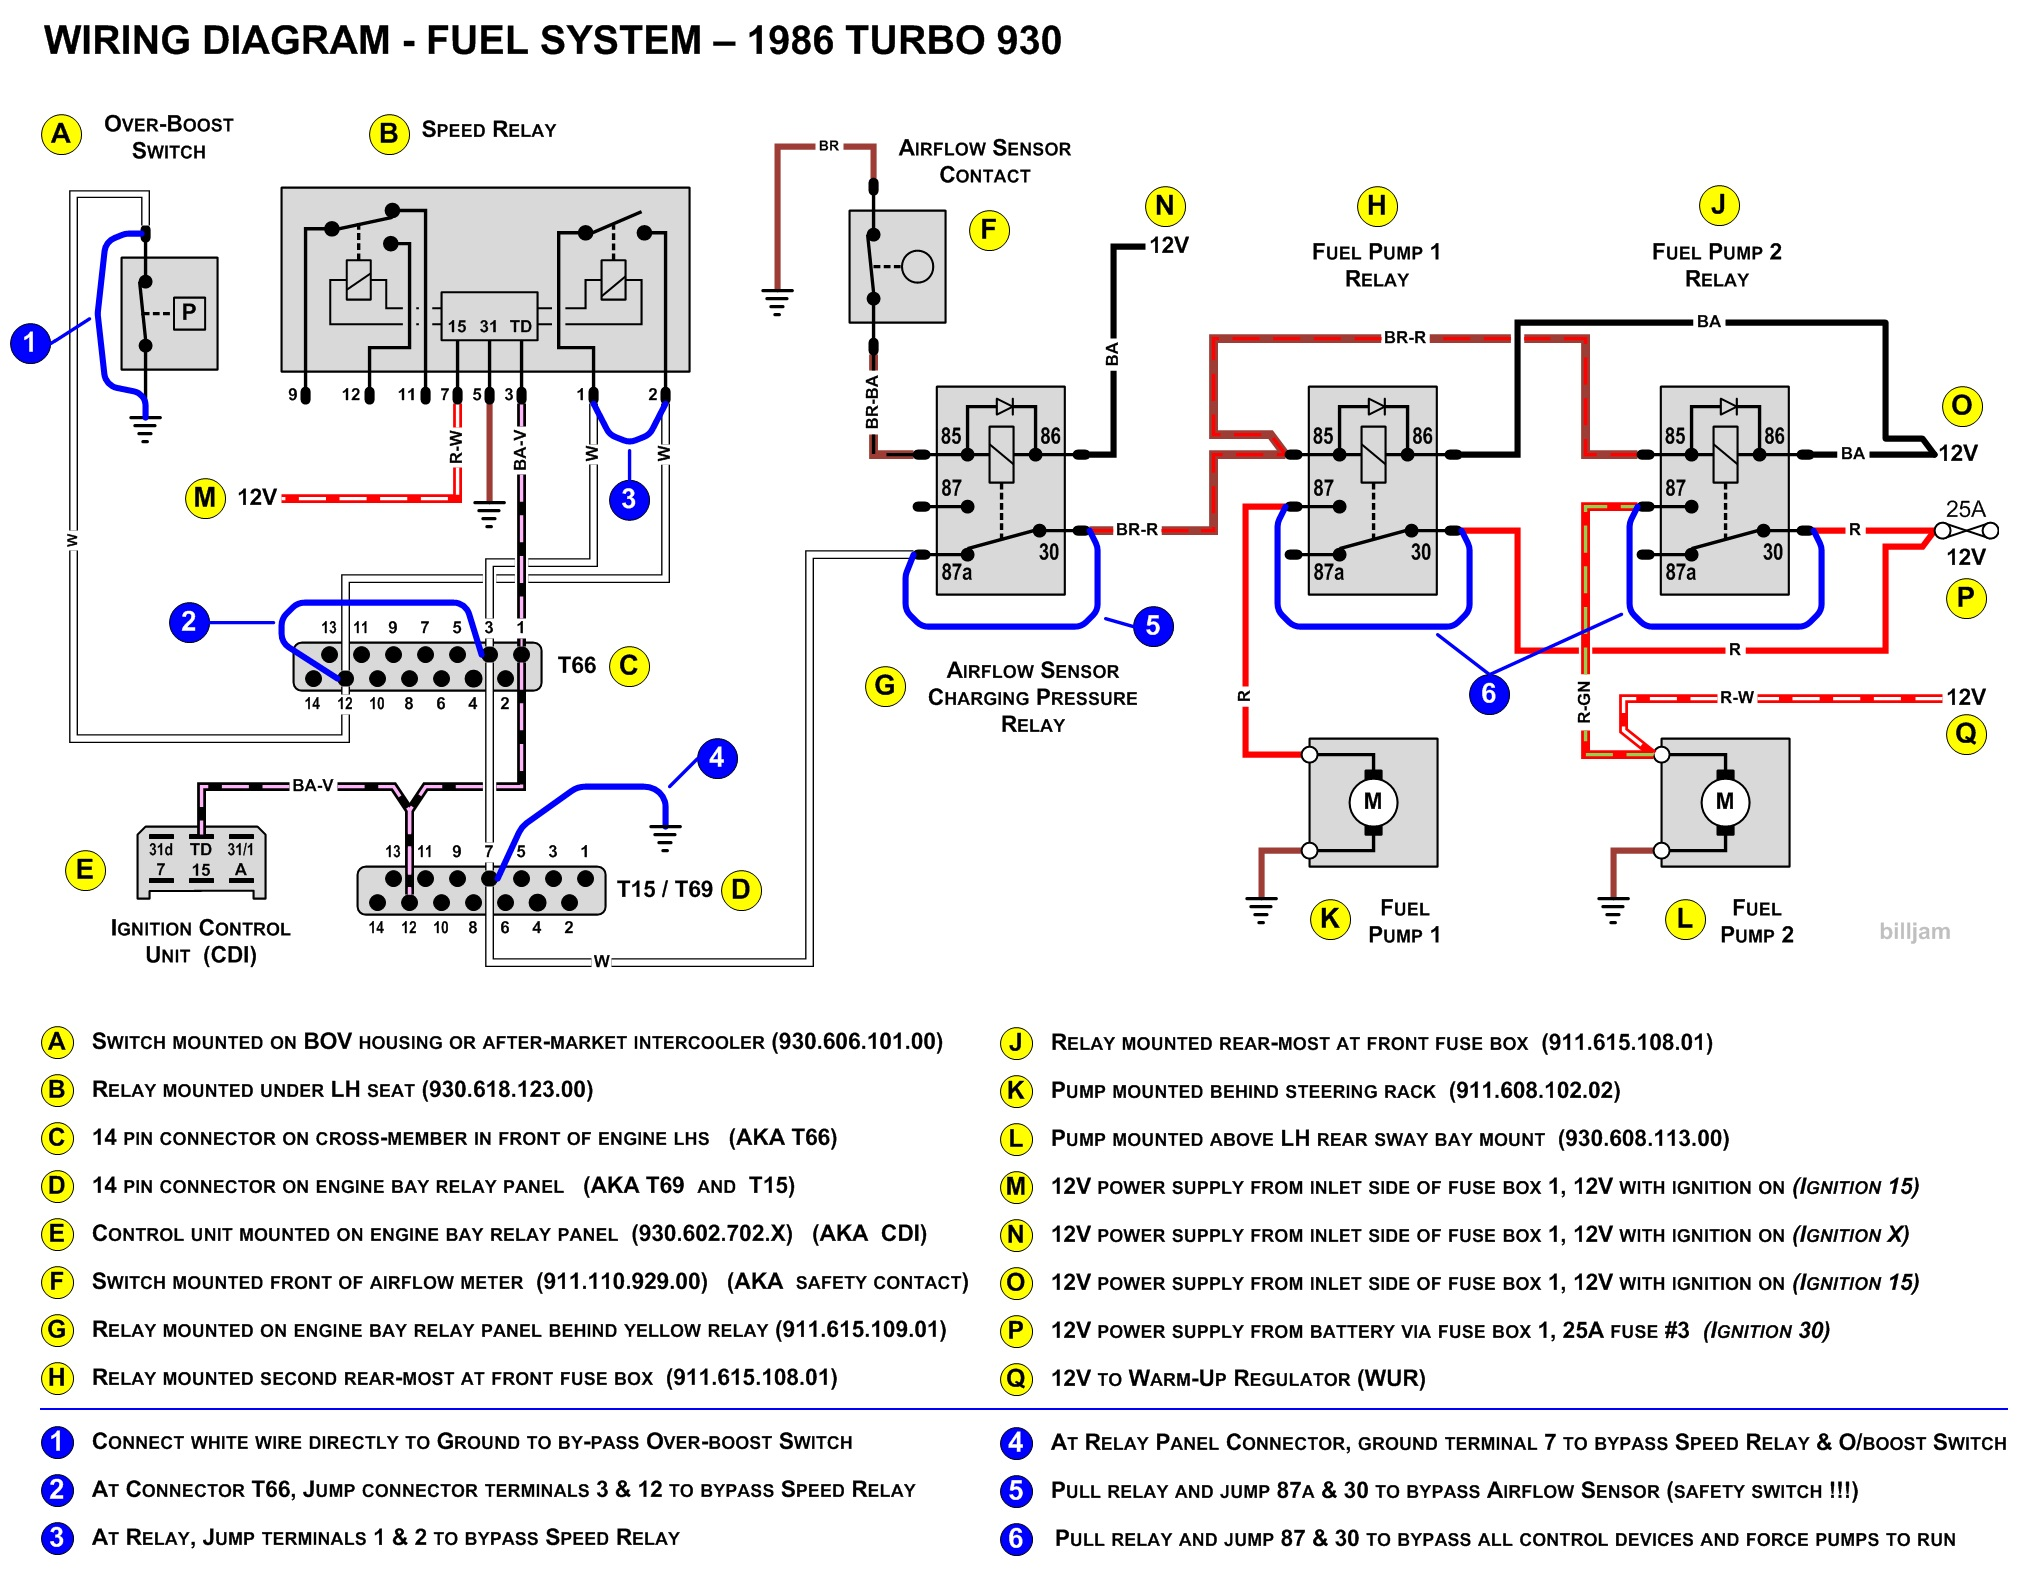 86 porsche 930 fuel system wiring diagram jumpers made a fuse box label for my 88 page 3 pelican parts technical bbs 2002 Porsche 911 Turbo at readyjetset.co